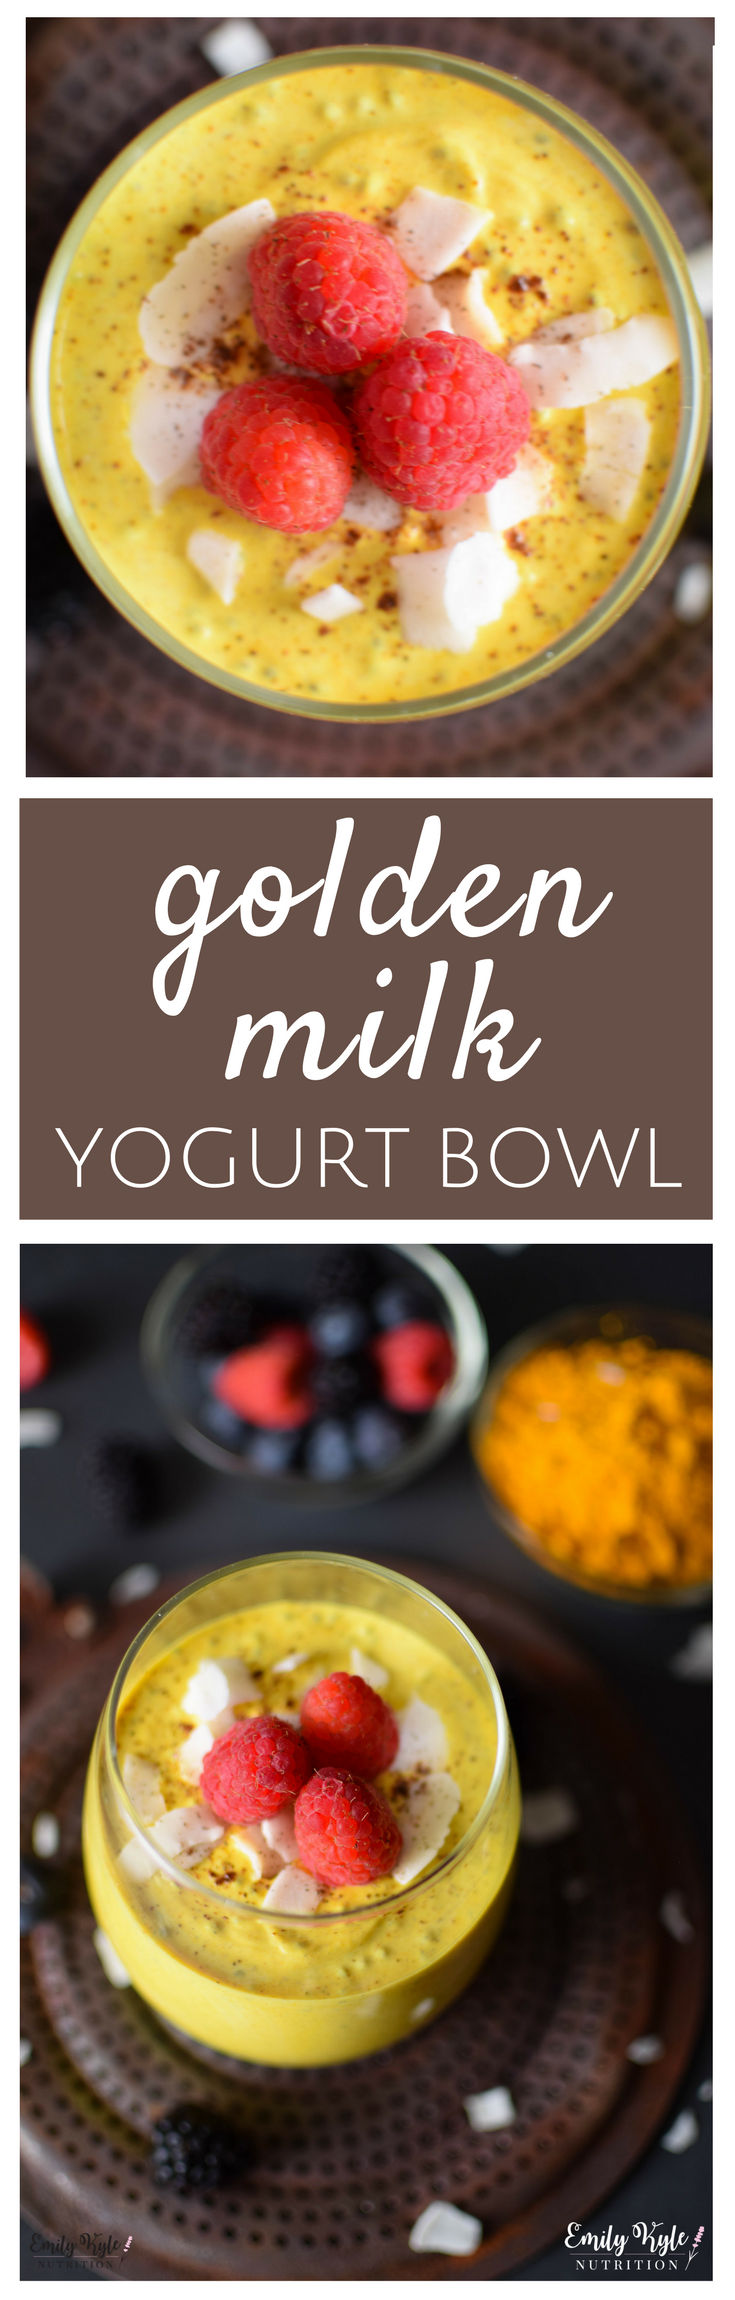 Enjoy the amazing anti-inflammatory health benefits of Turmeric in this high protein, easy-to-make Turmeric Golden Milk Yogurt Bowl!